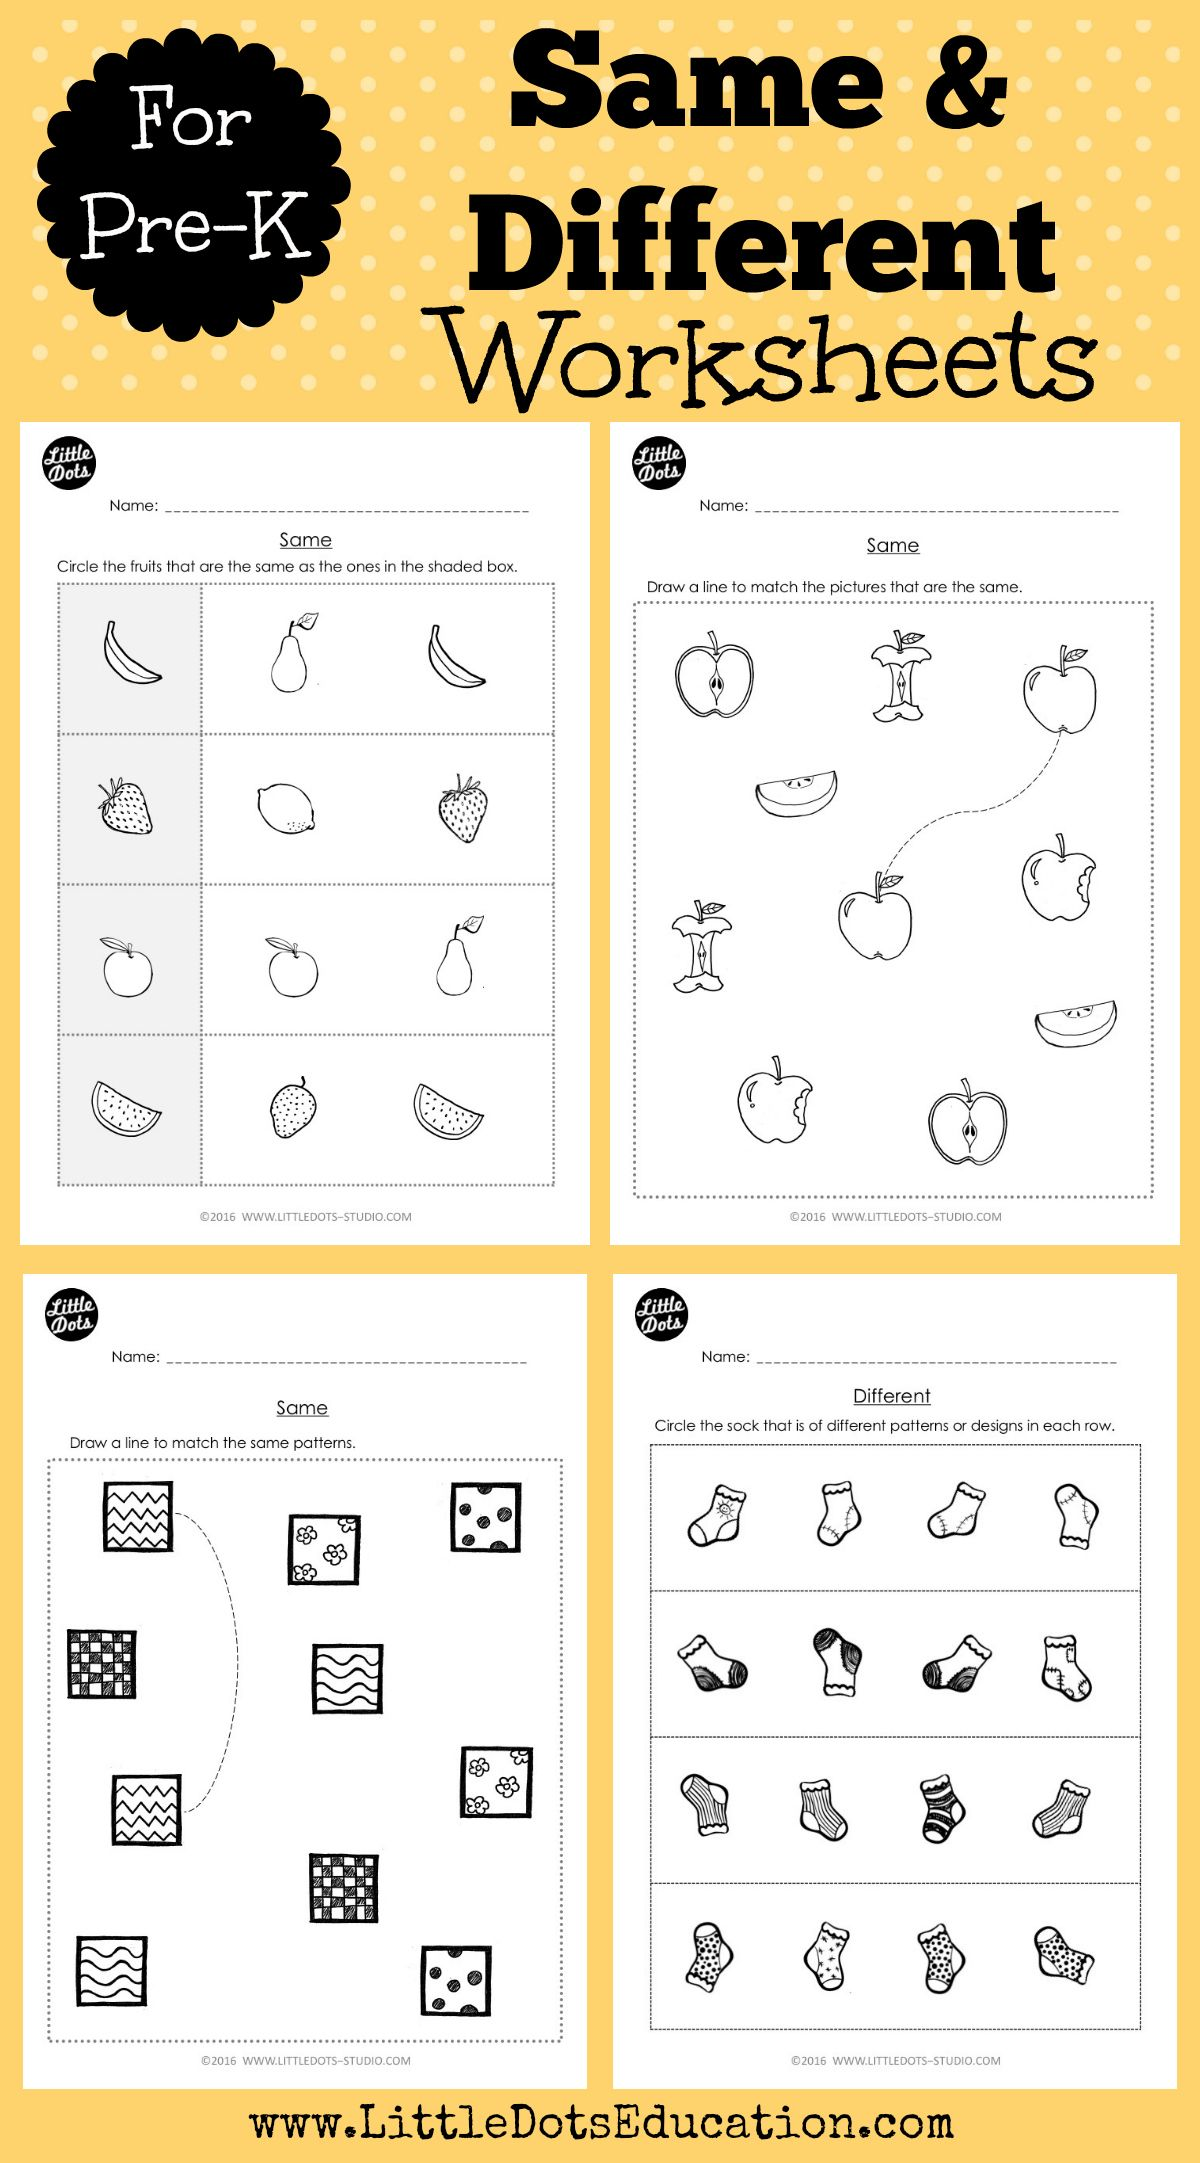 hight resolution of Pre-K Same and Different Worksheets and Activities   Kindergarten worksheets